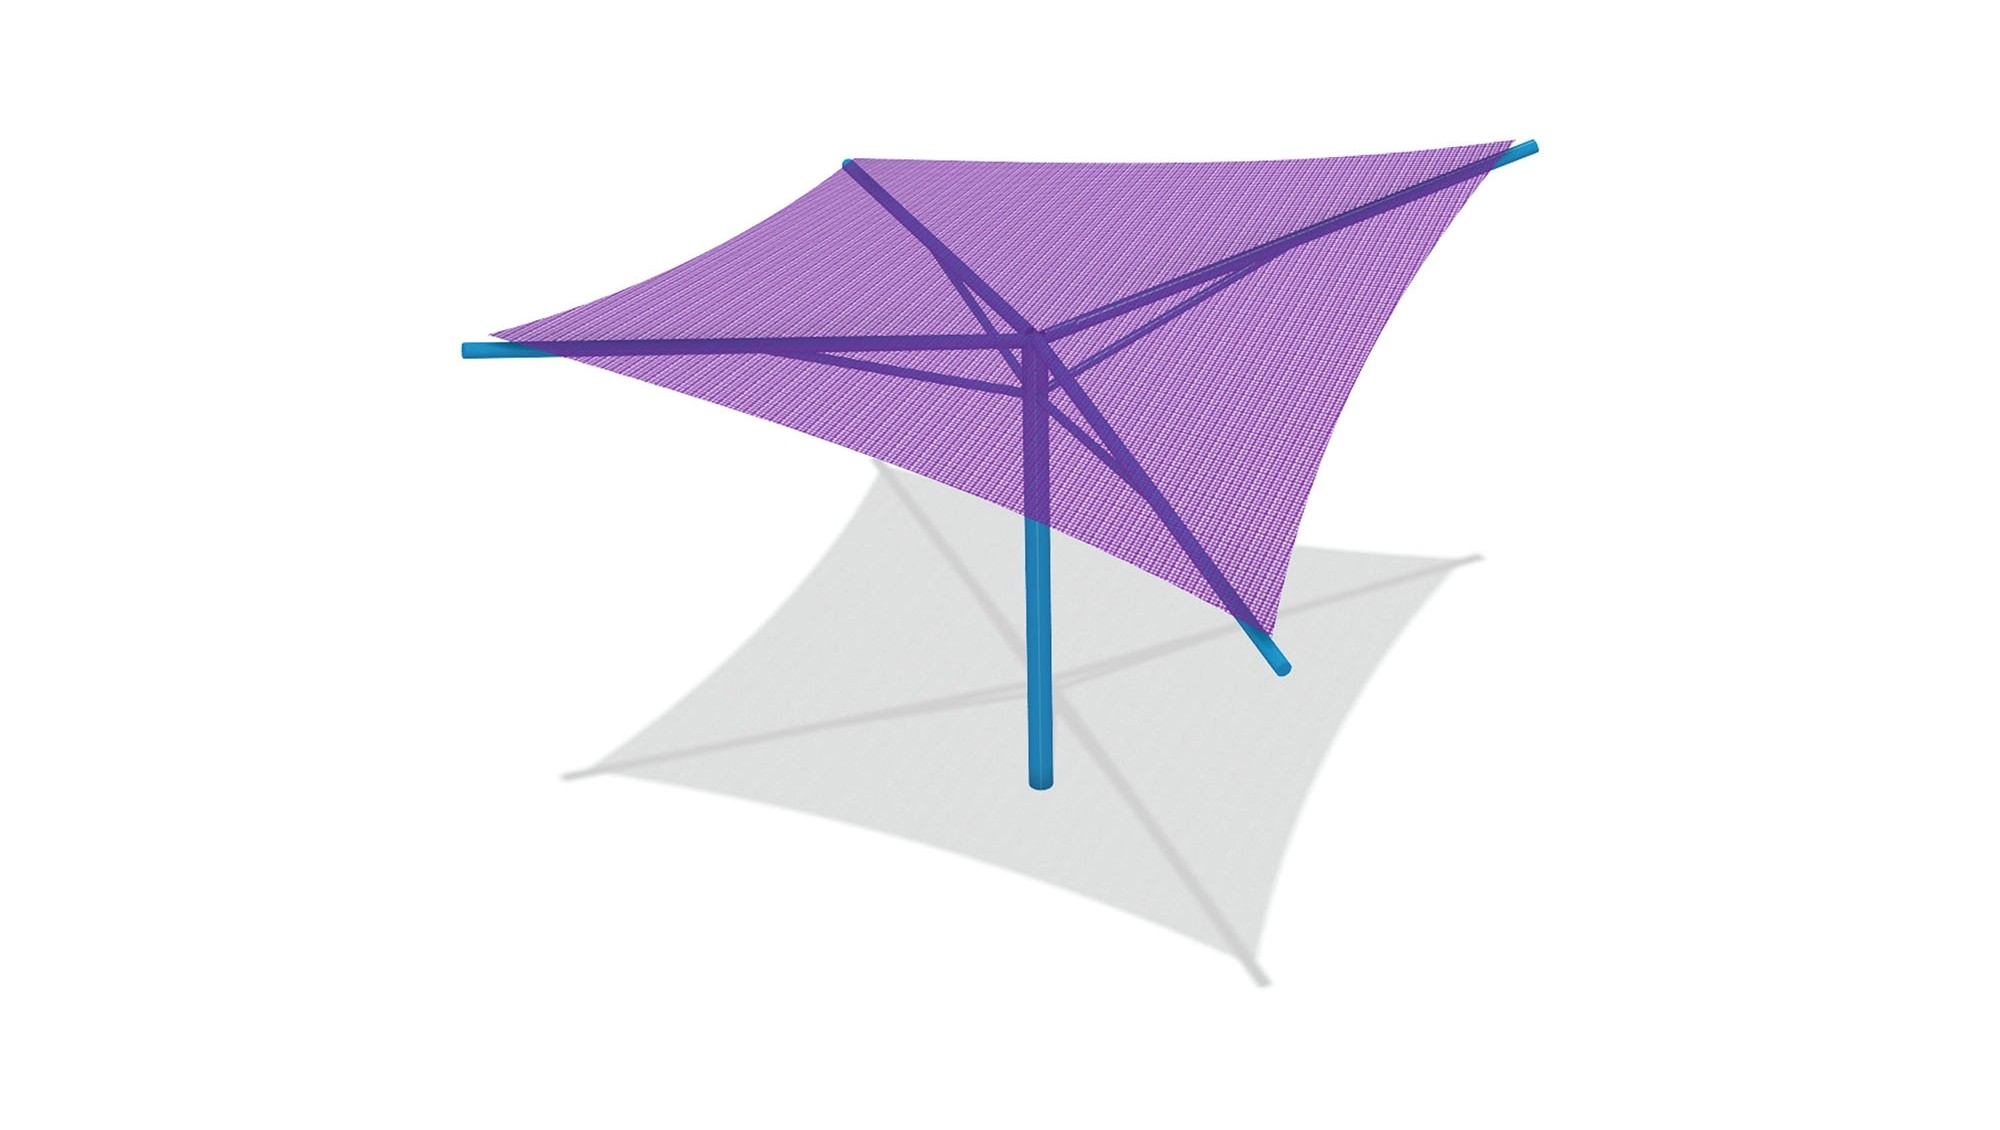 Hyperbolic Umbrella Shade - 12' x 12' x 8' High (Surface Mount)